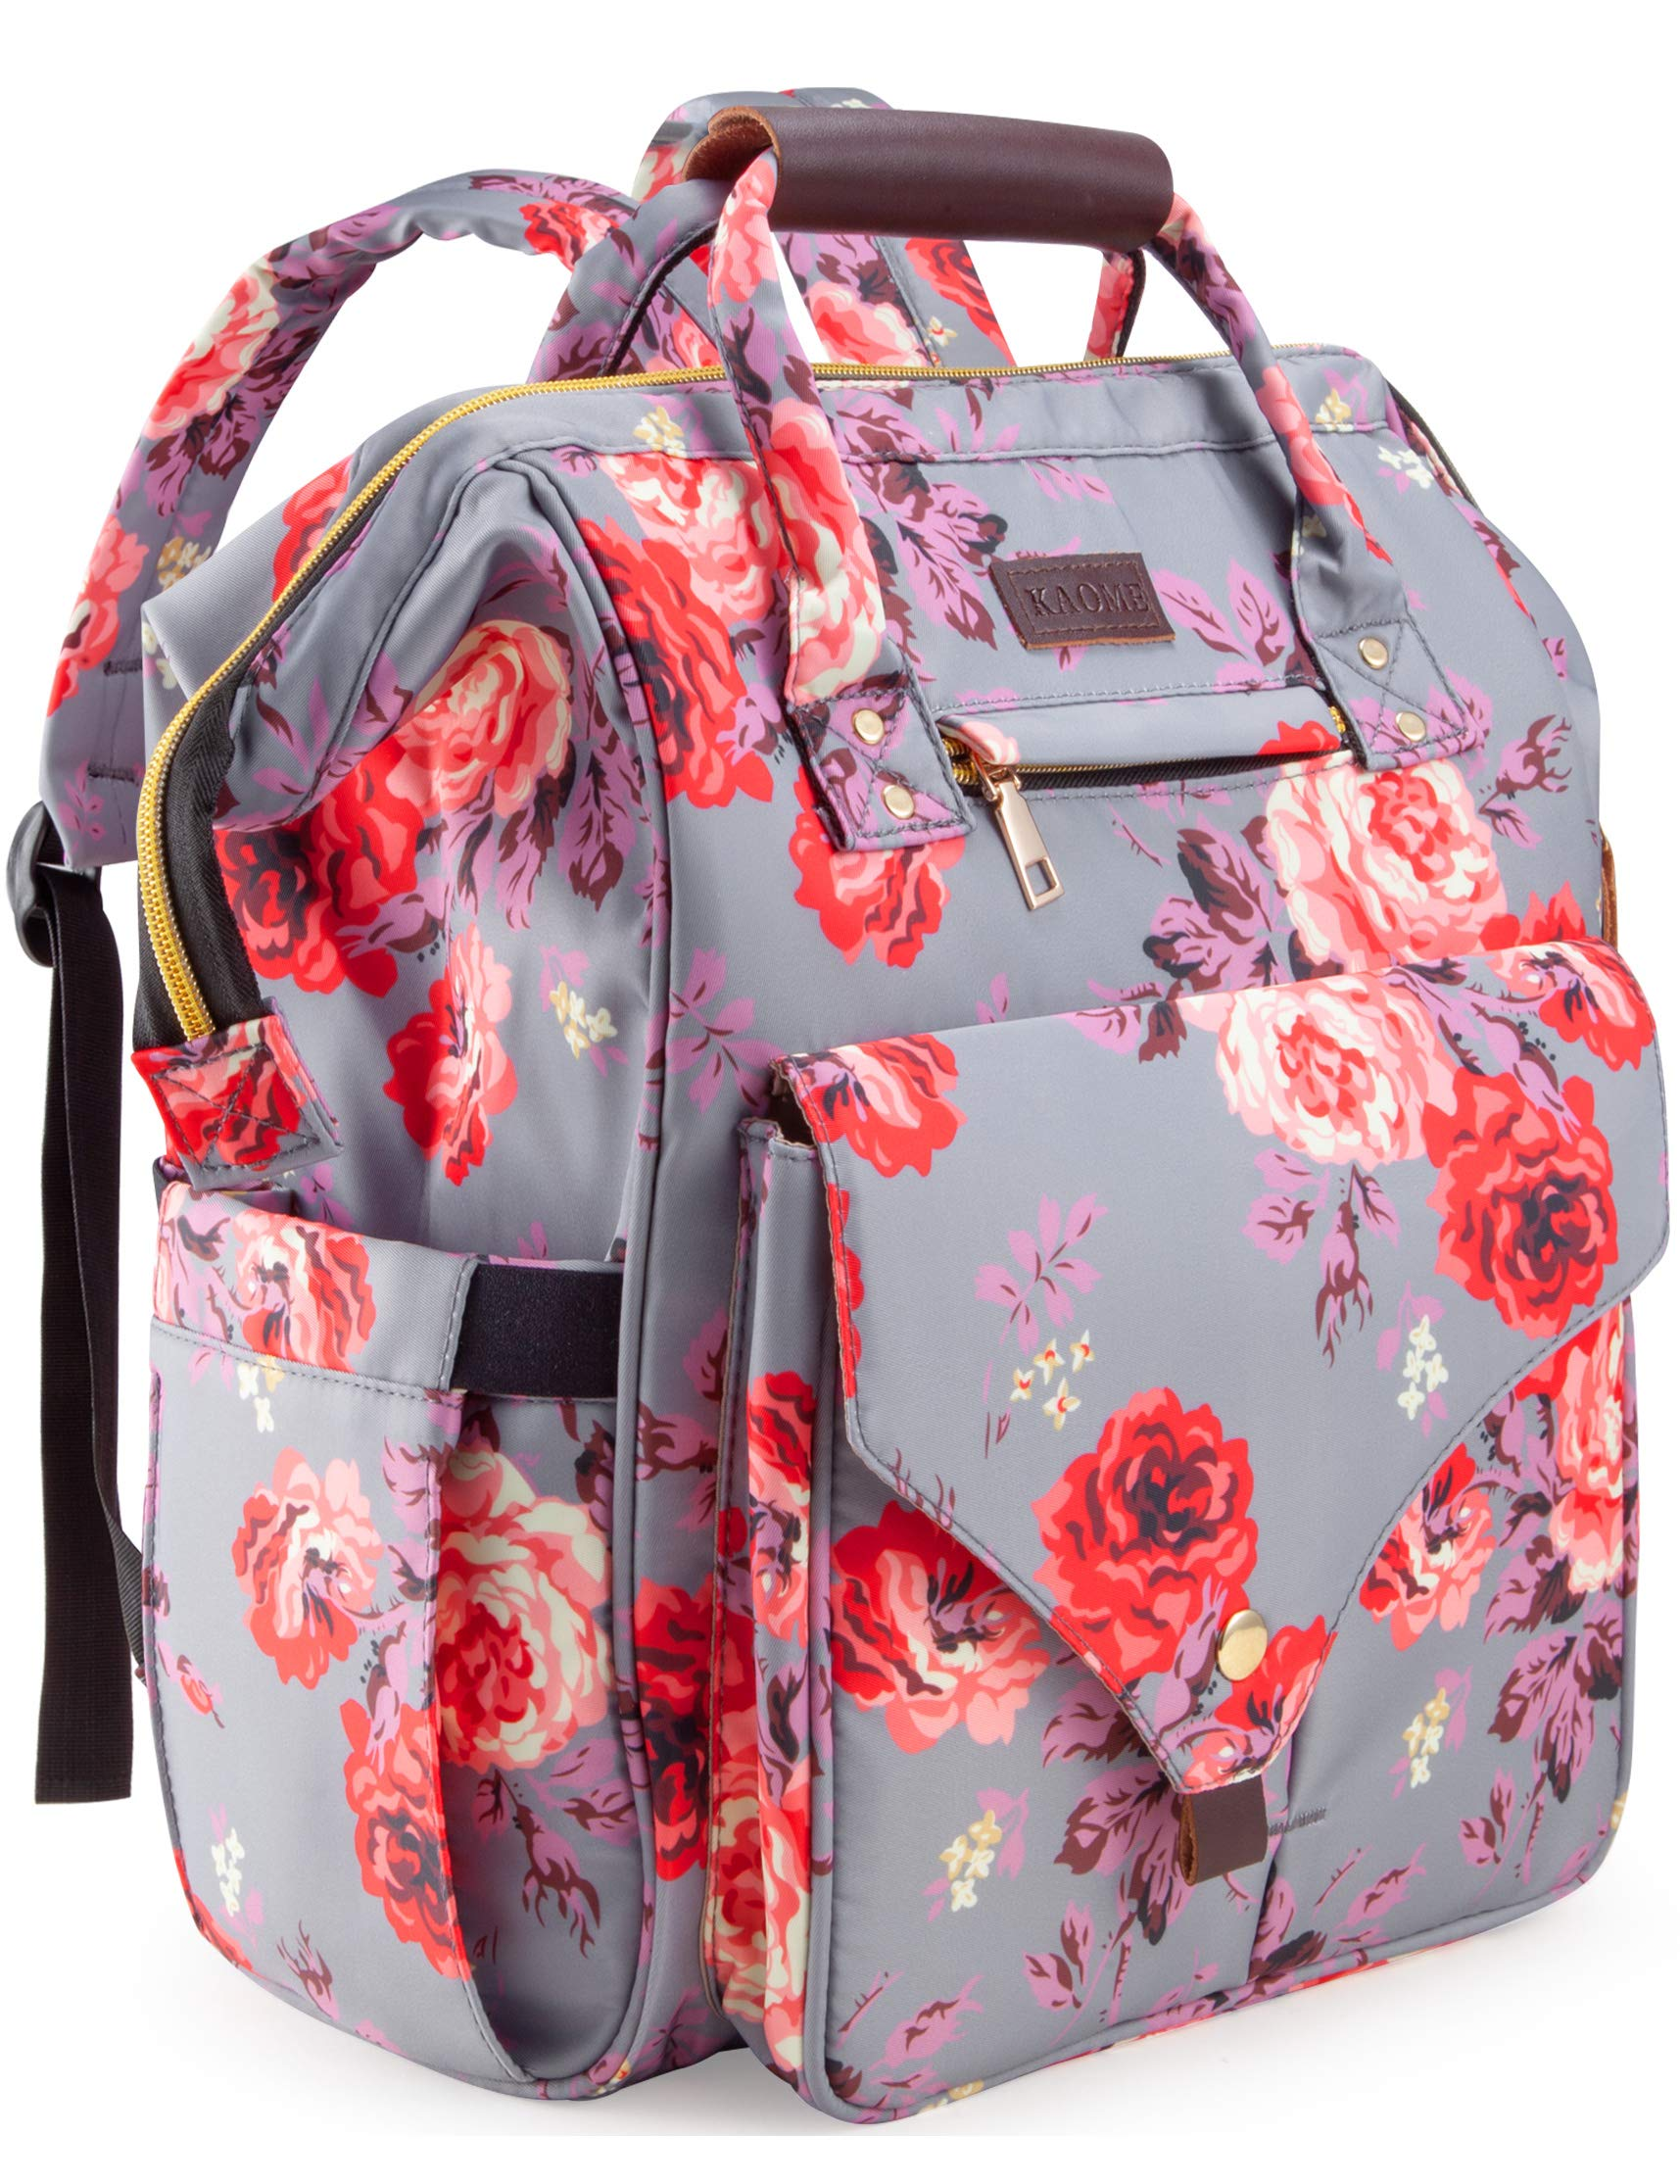 Diaper Bag Backpack, Kaome Large Capacity Nappy Bags, Waterproof Baby Bag Floral Insulated Durable Travel Maternity Back Pack for Baby Girls (with Diaper Pad, Bottle Bag) by Kaome